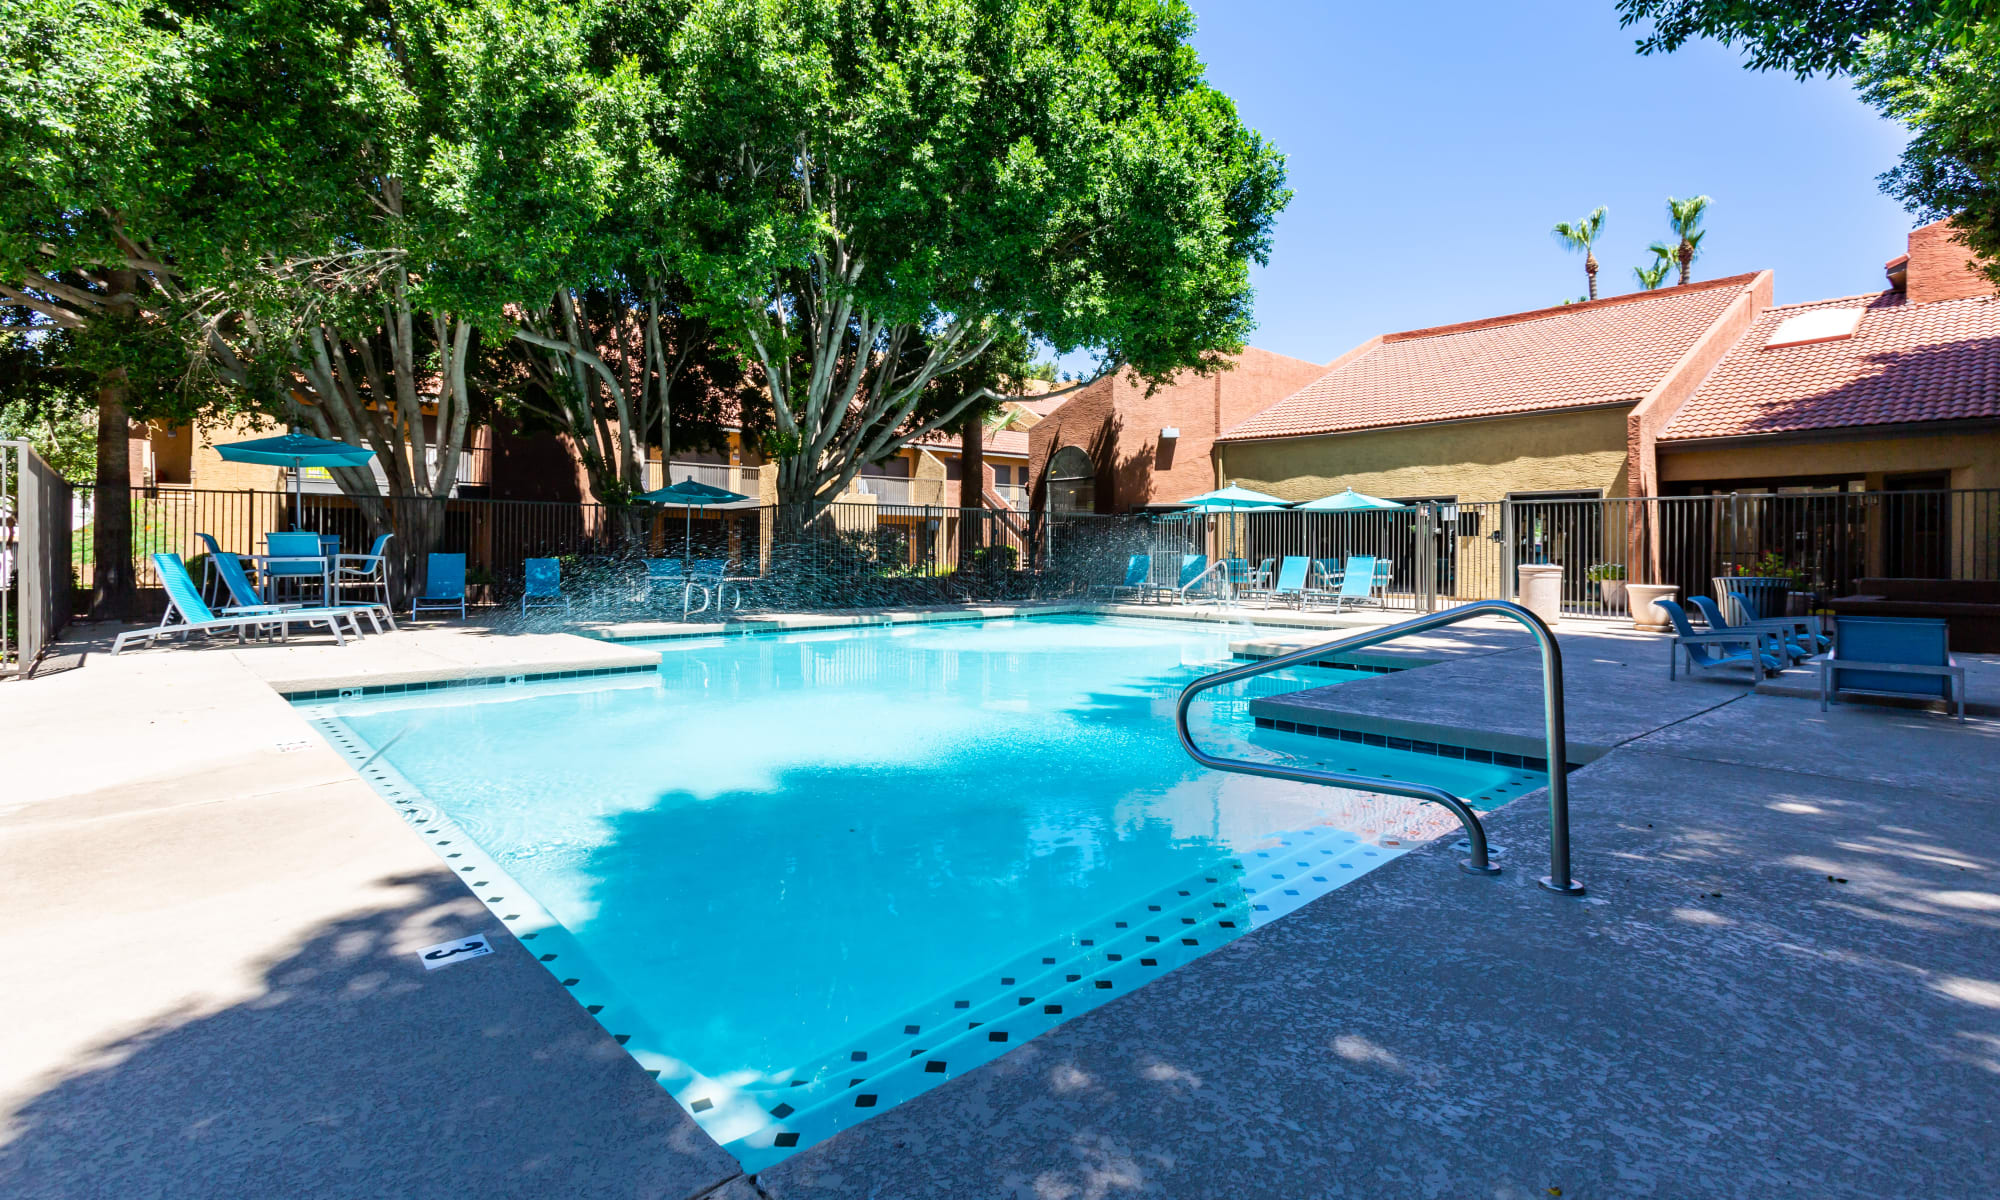 Waterford Place Apartments in Mesa, Arizona